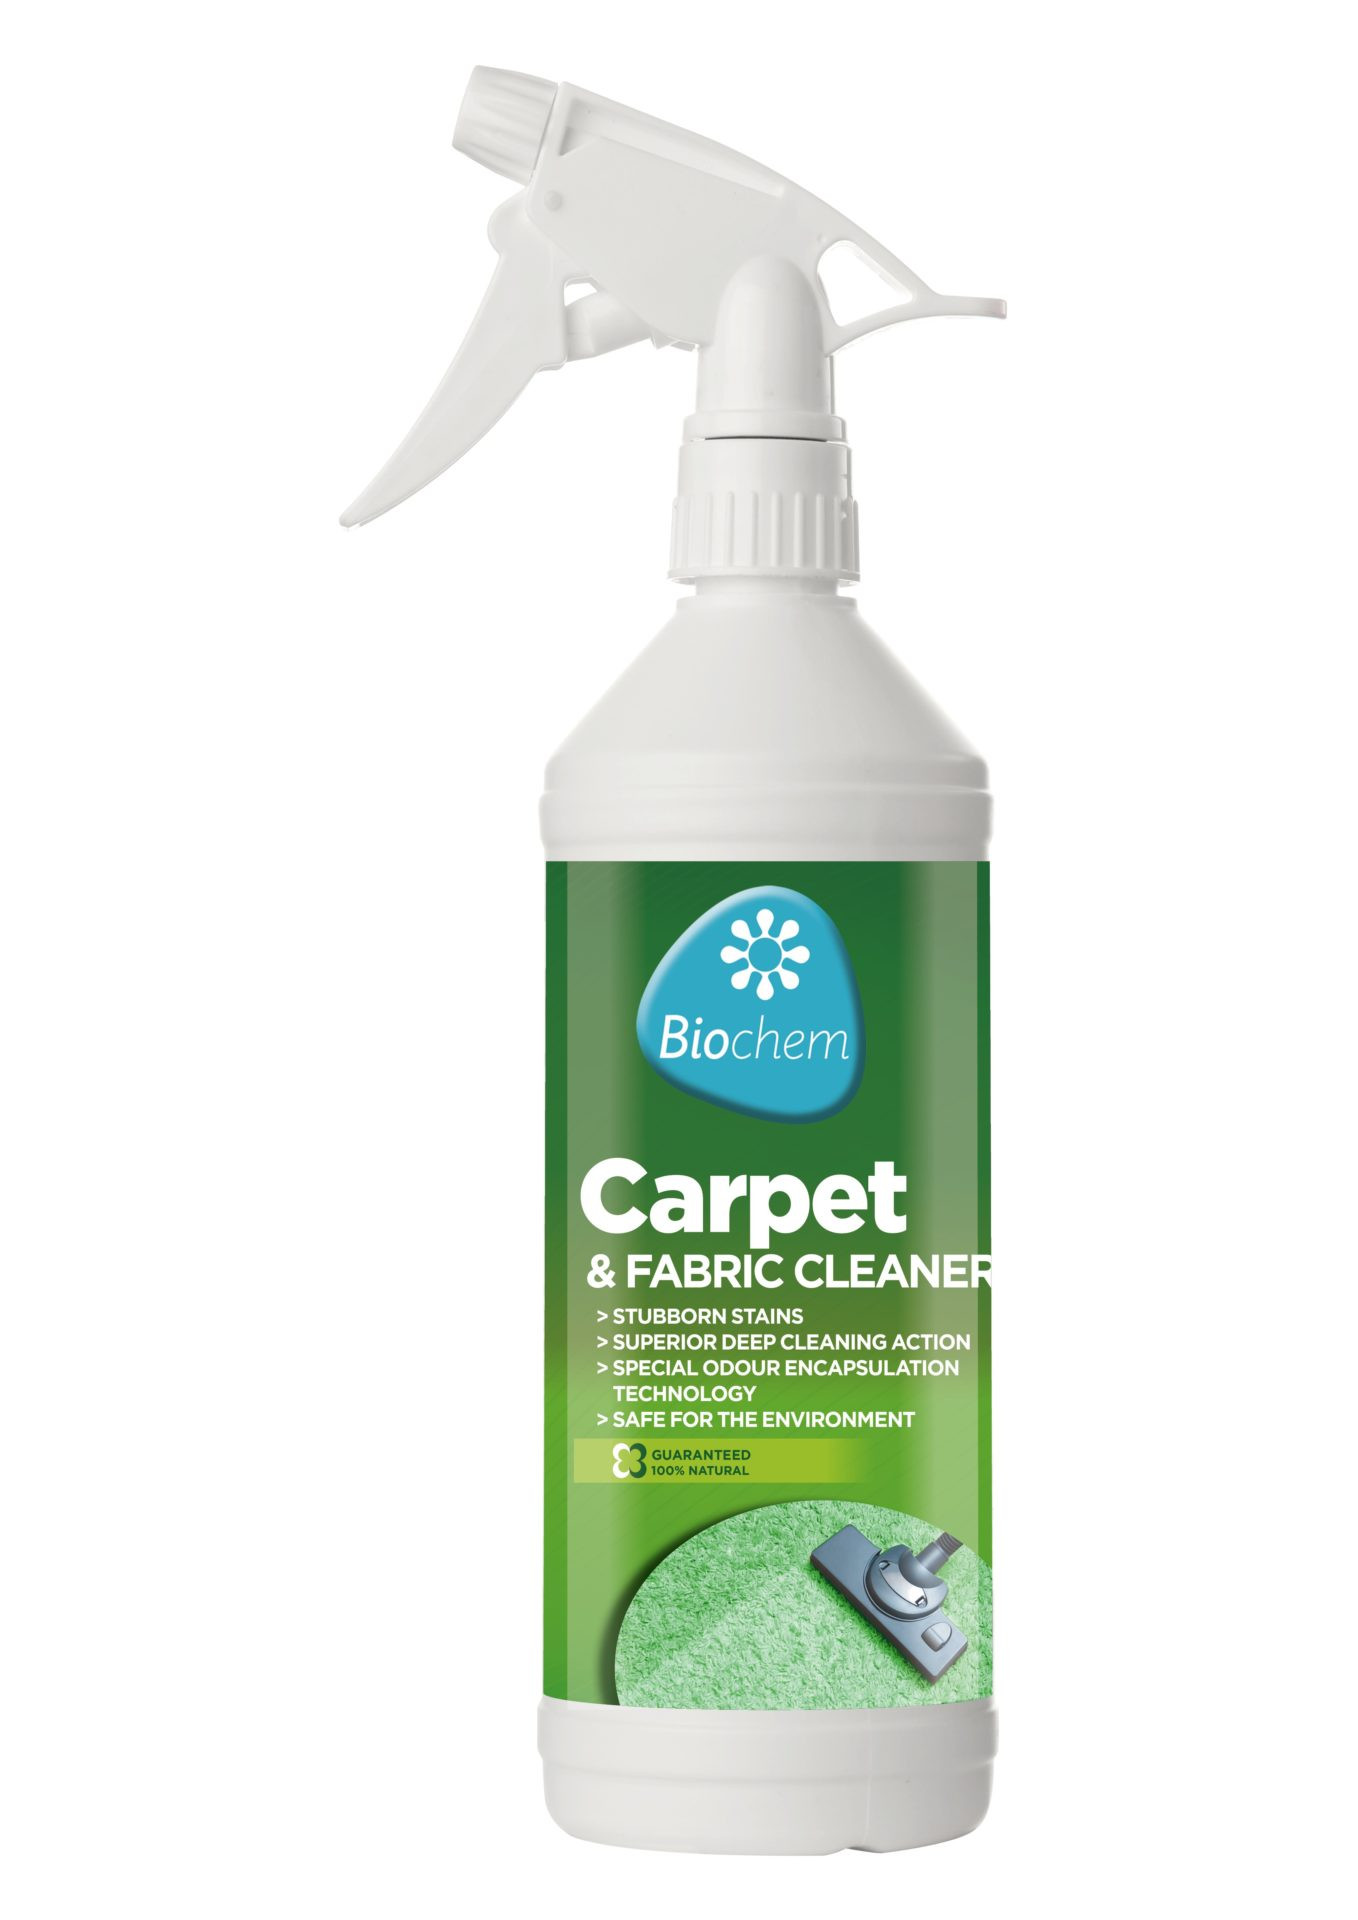 Carpet & Fabric Cleaner